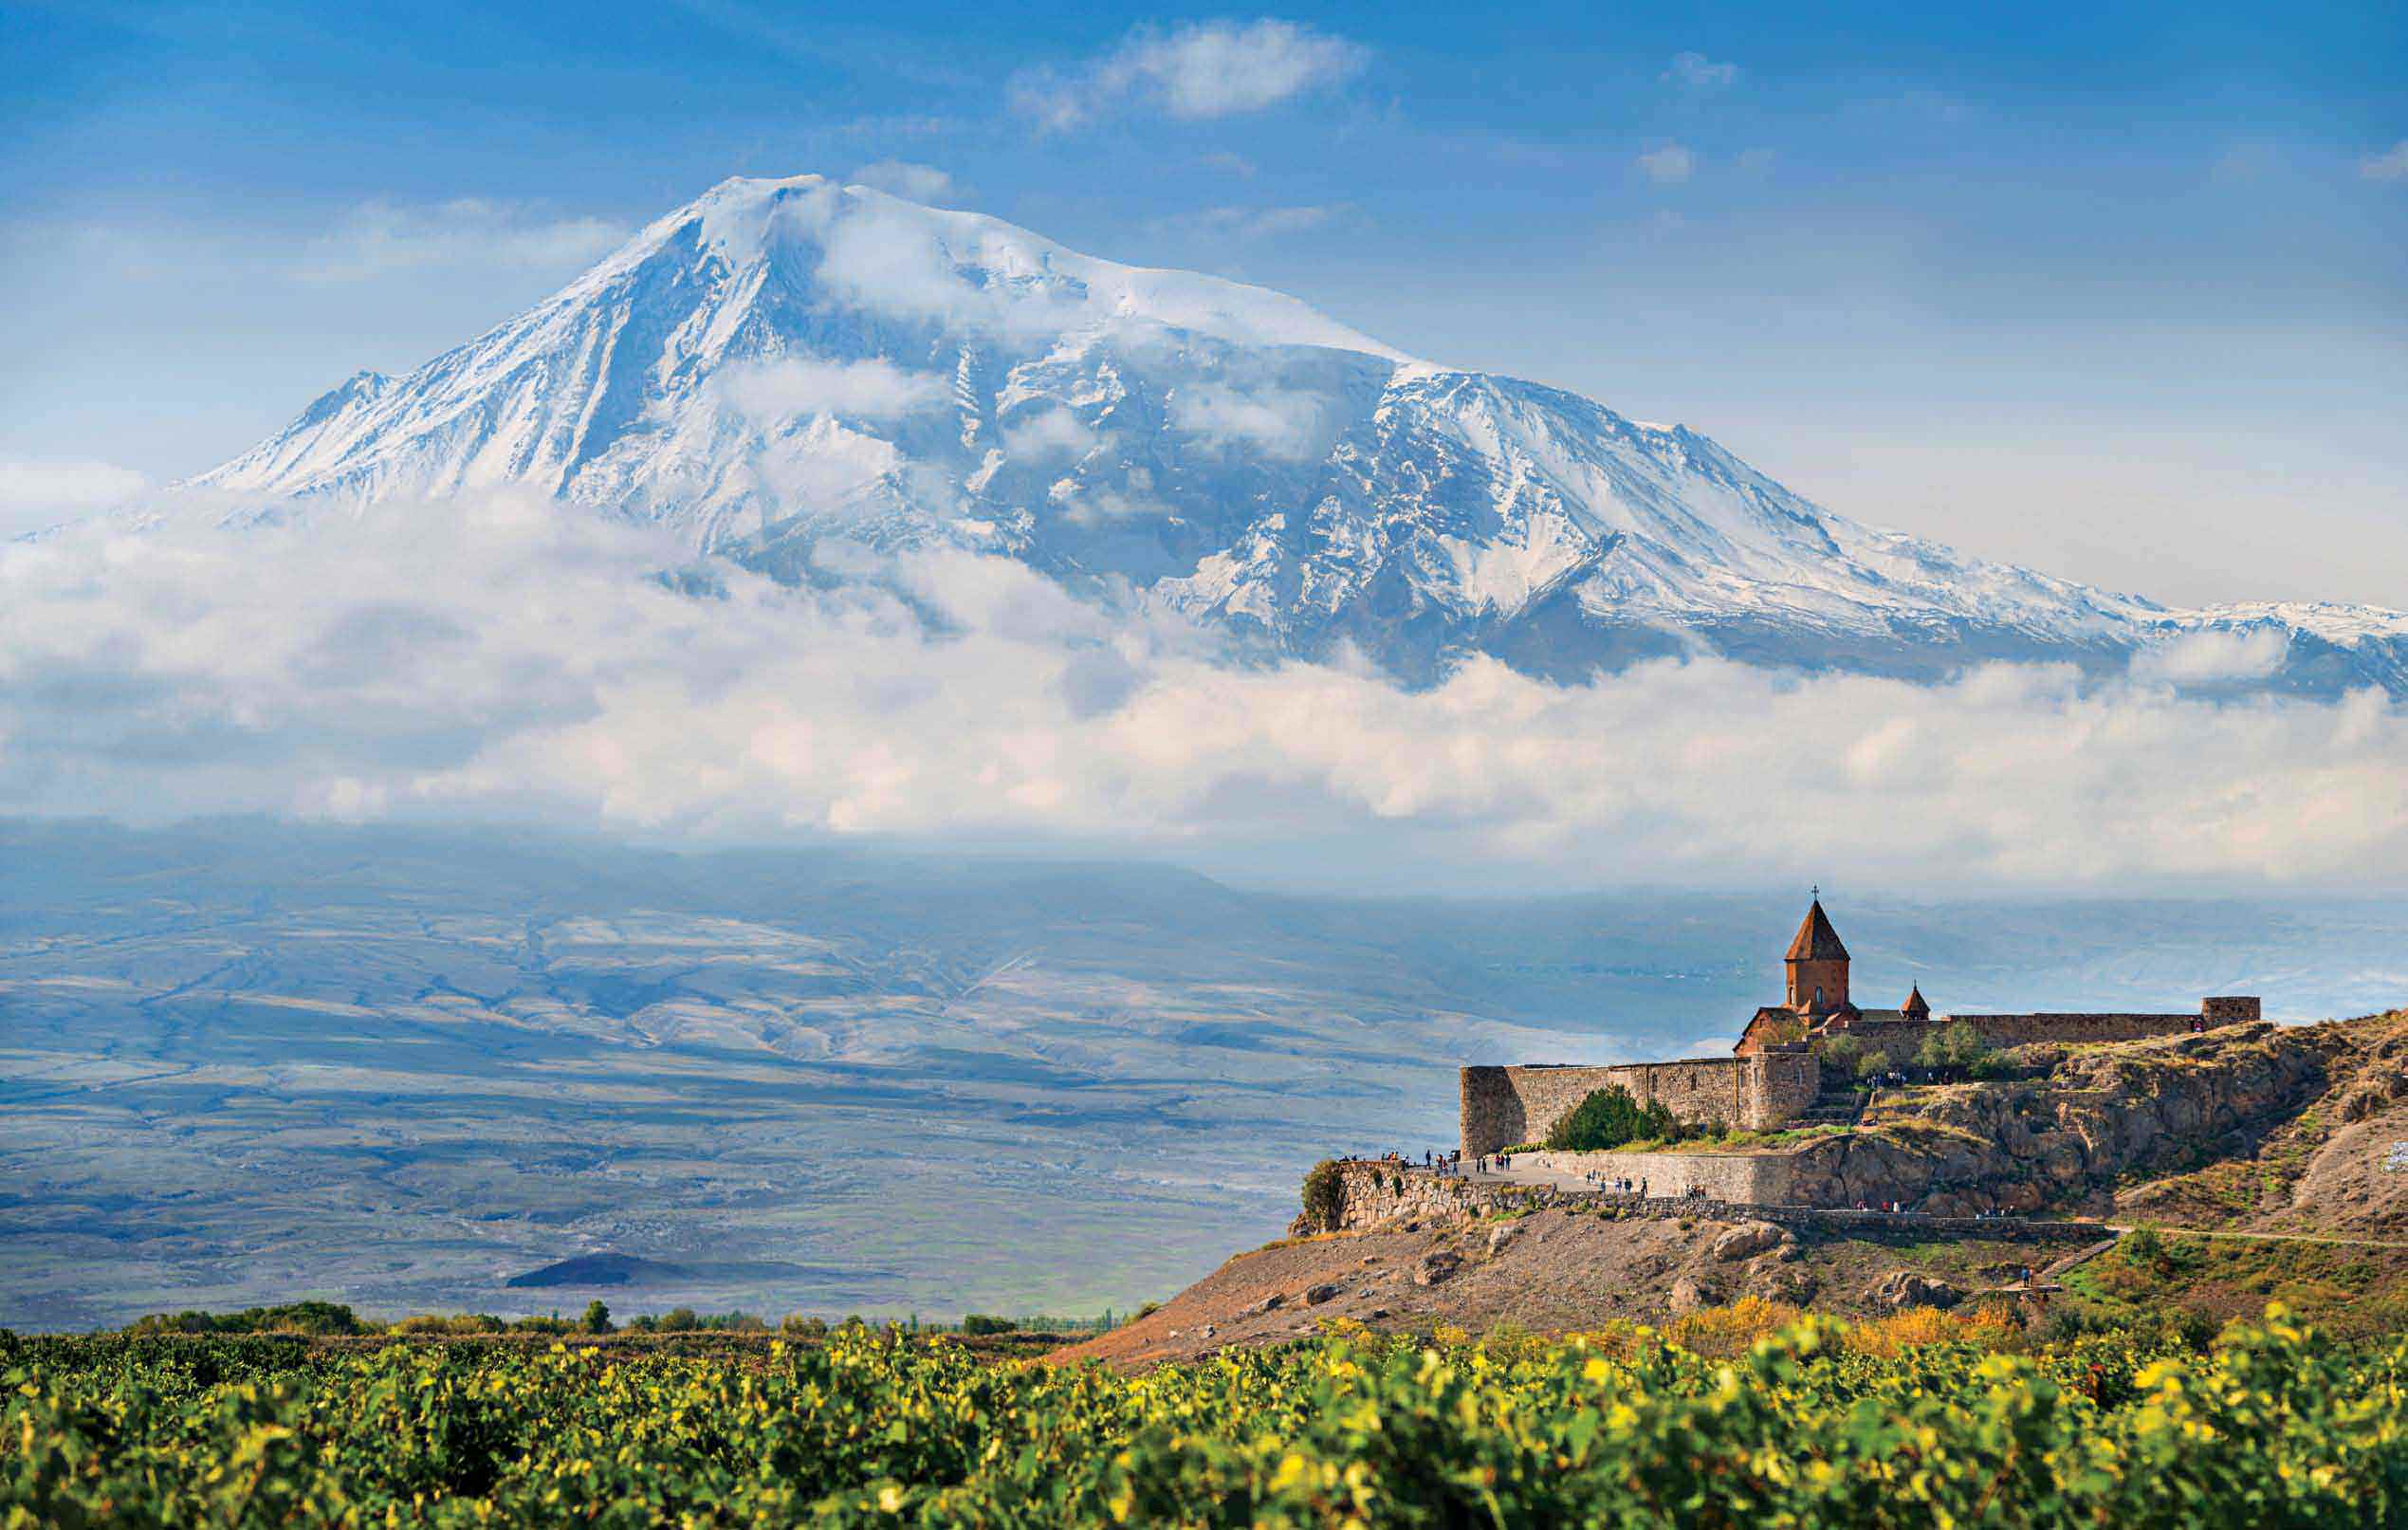 Immense Yourself In Armenia Land Of Snowy Mountains, Mystical Monasteries And Noah's ark